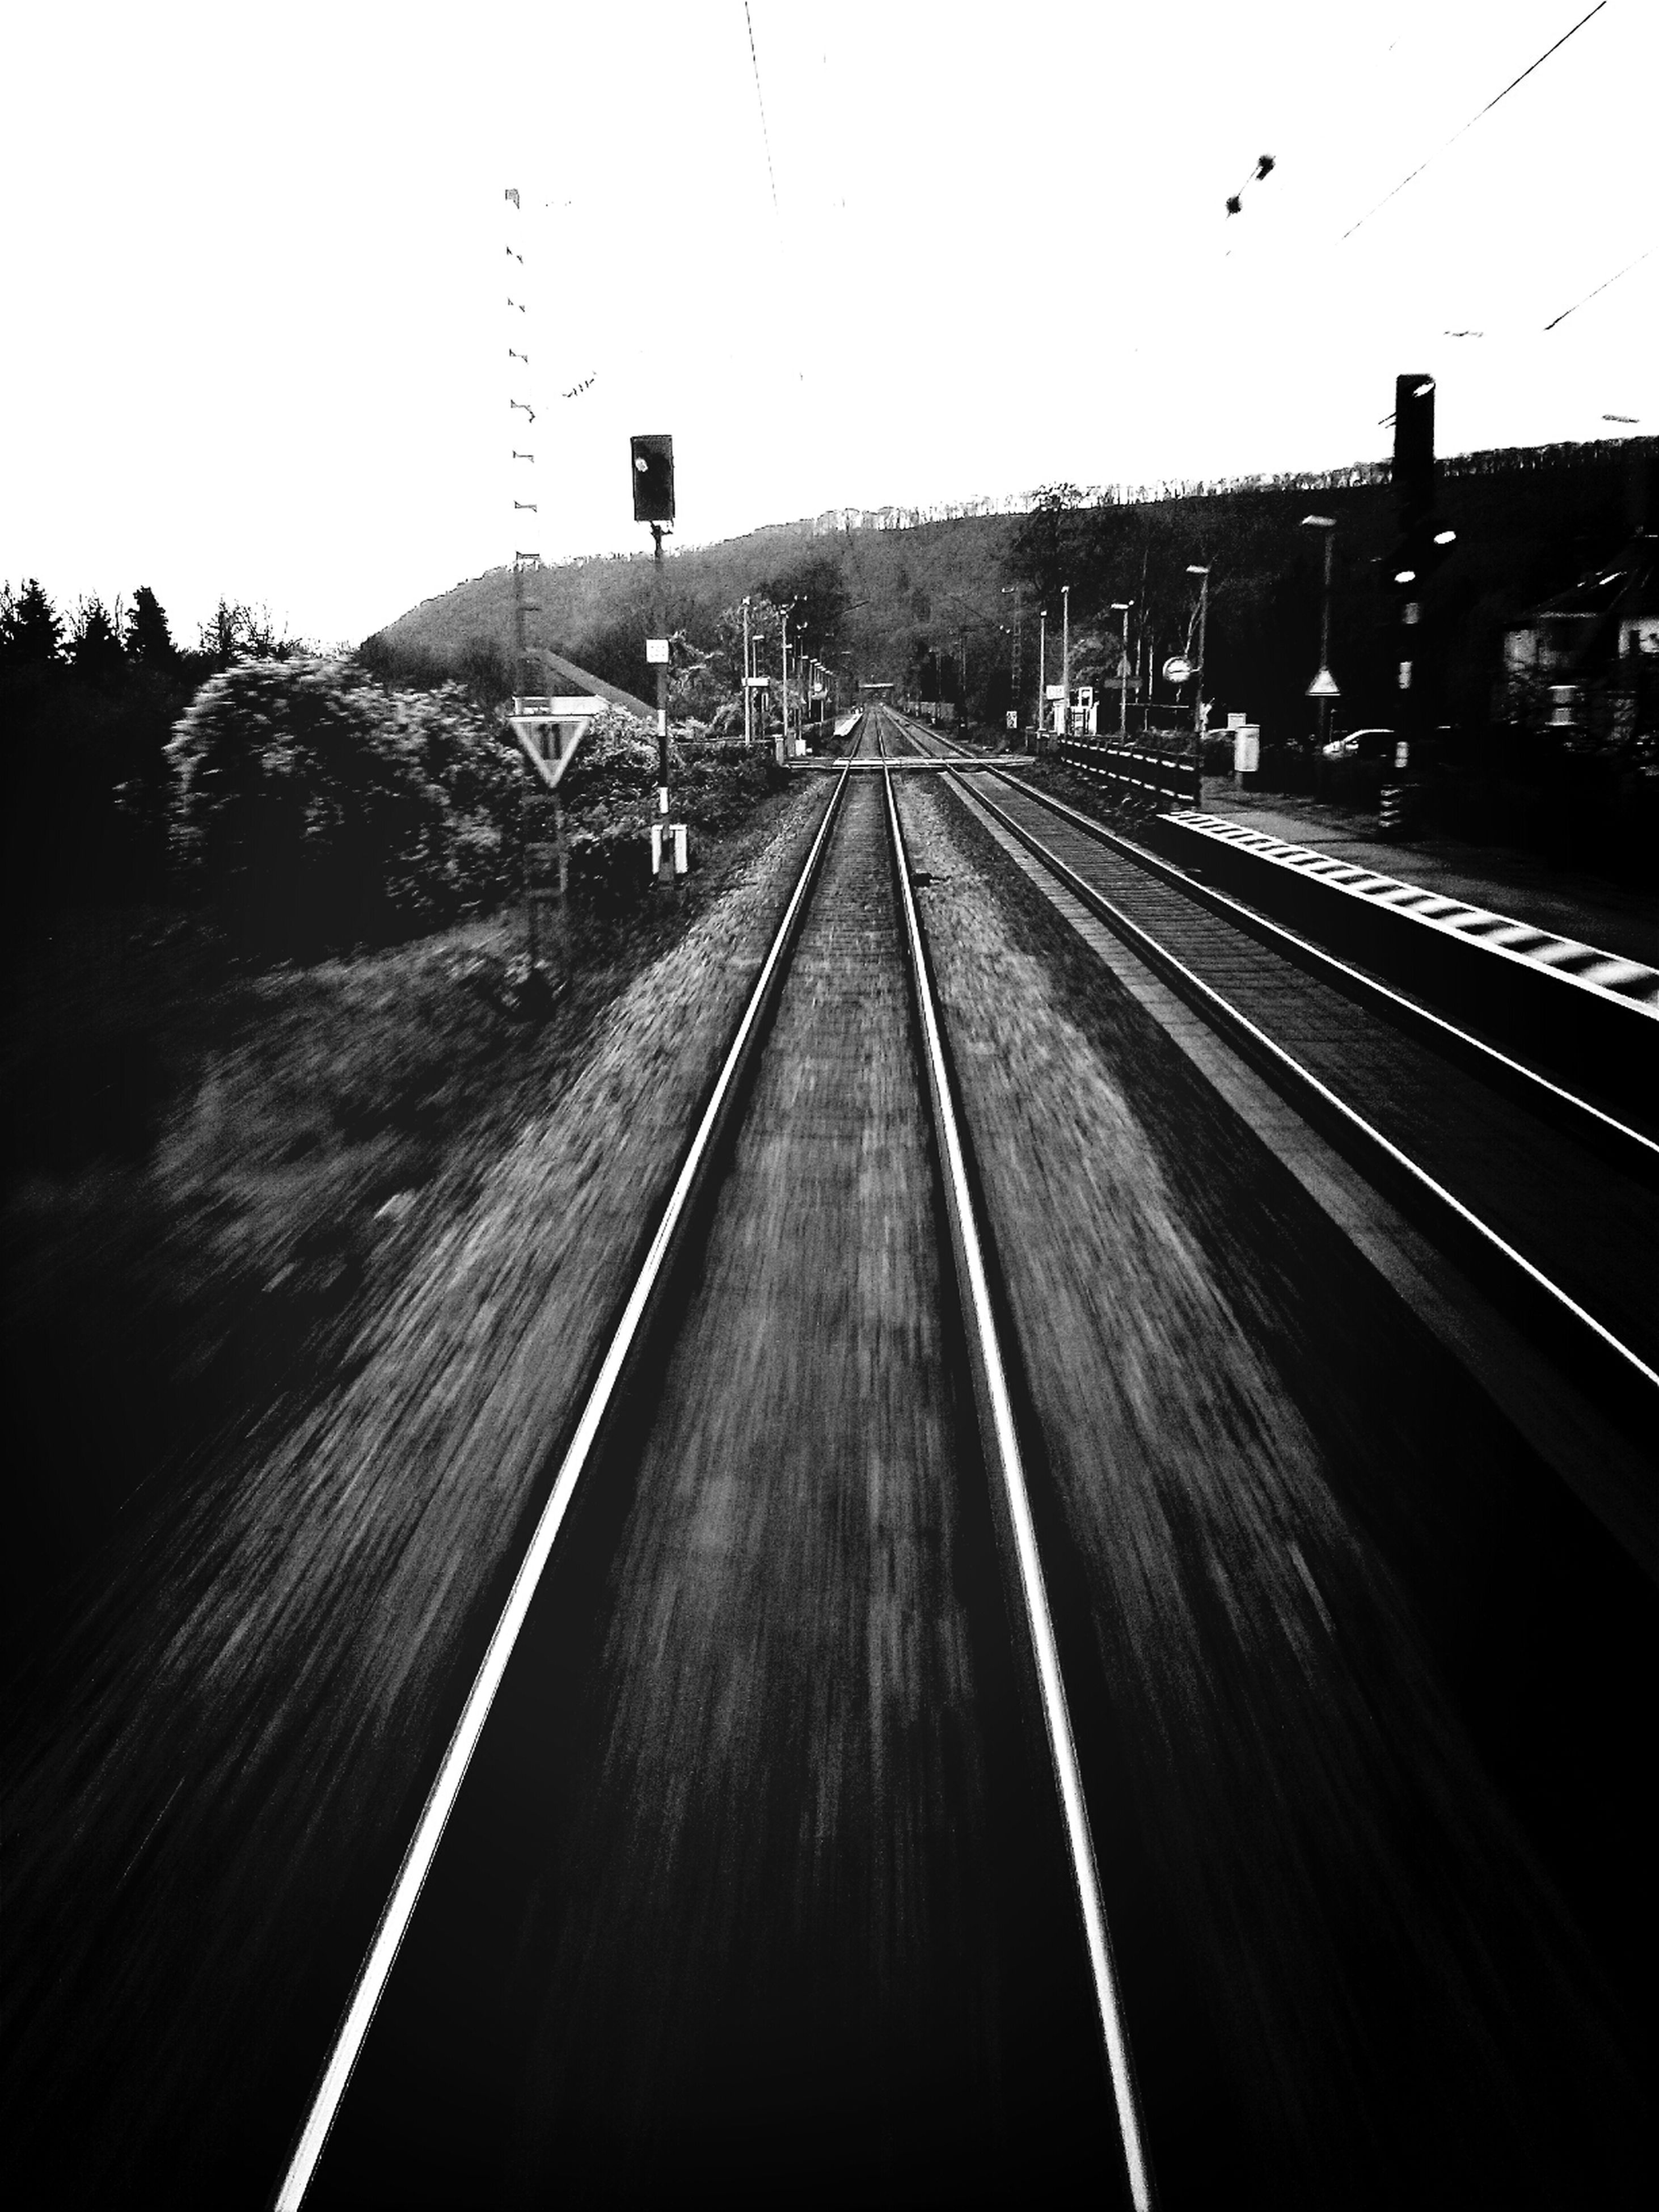 railroad track, transportation, rail transportation, public transportation, railroad station platform, railroad station, the way forward, clear sky, diminishing perspective, vanishing point, mode of transport, railway track, travel, built structure, train - vehicle, on the move, high angle view, journey, sky, outdoors